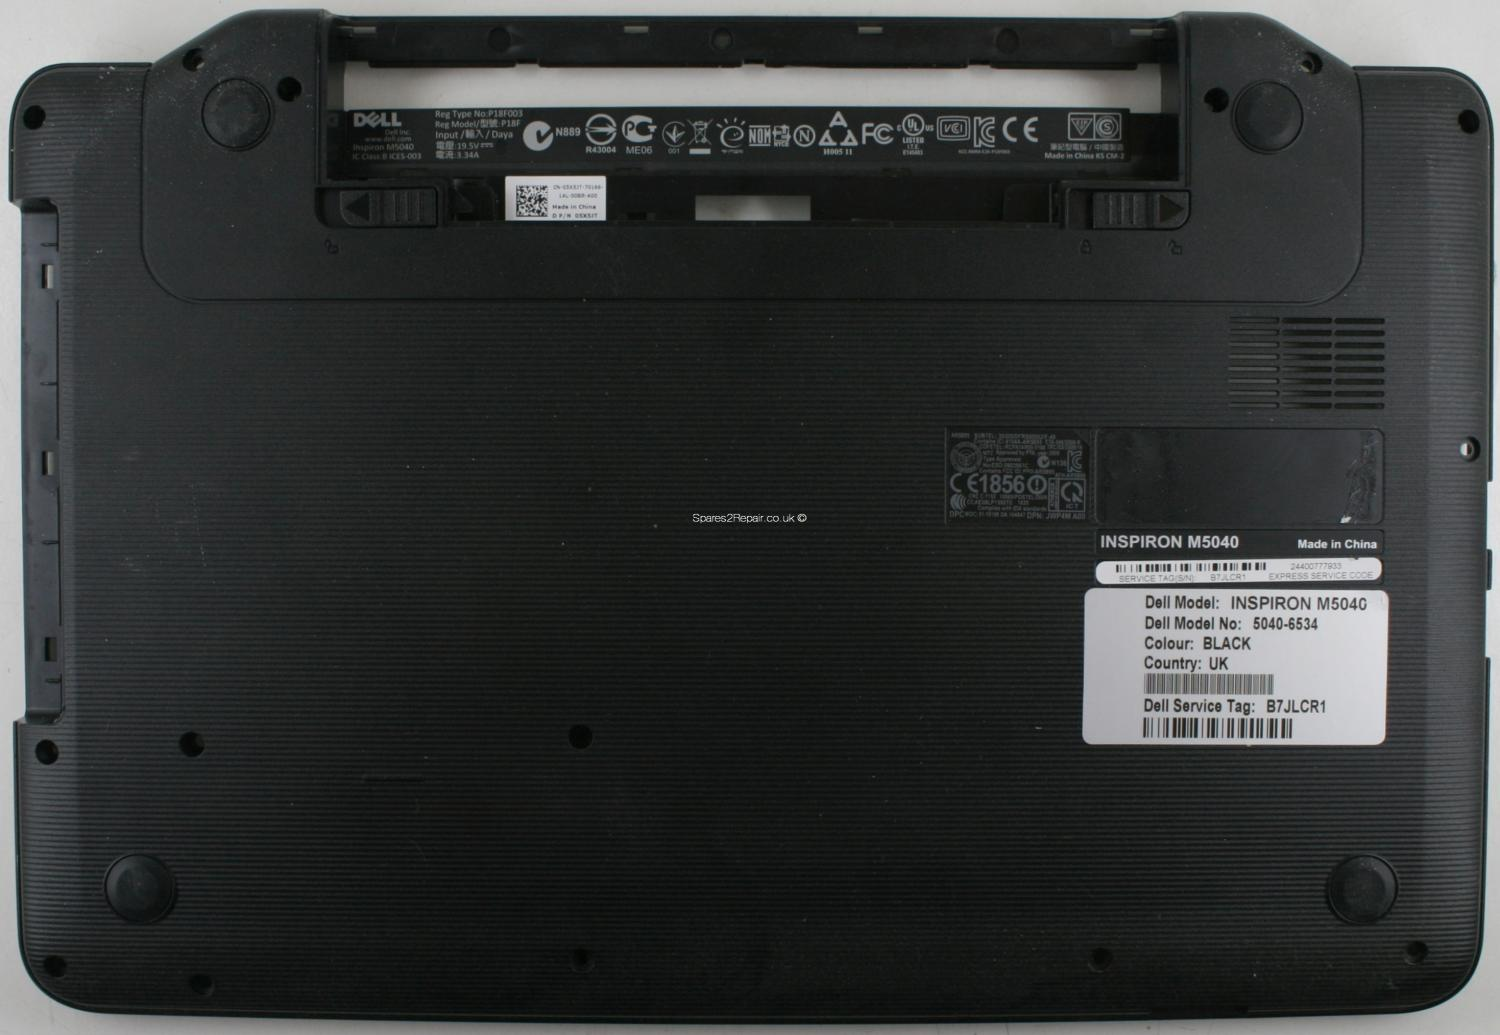 Dell Inspiron M5040 - Bottom Base - 60 4IP05 022 - A02